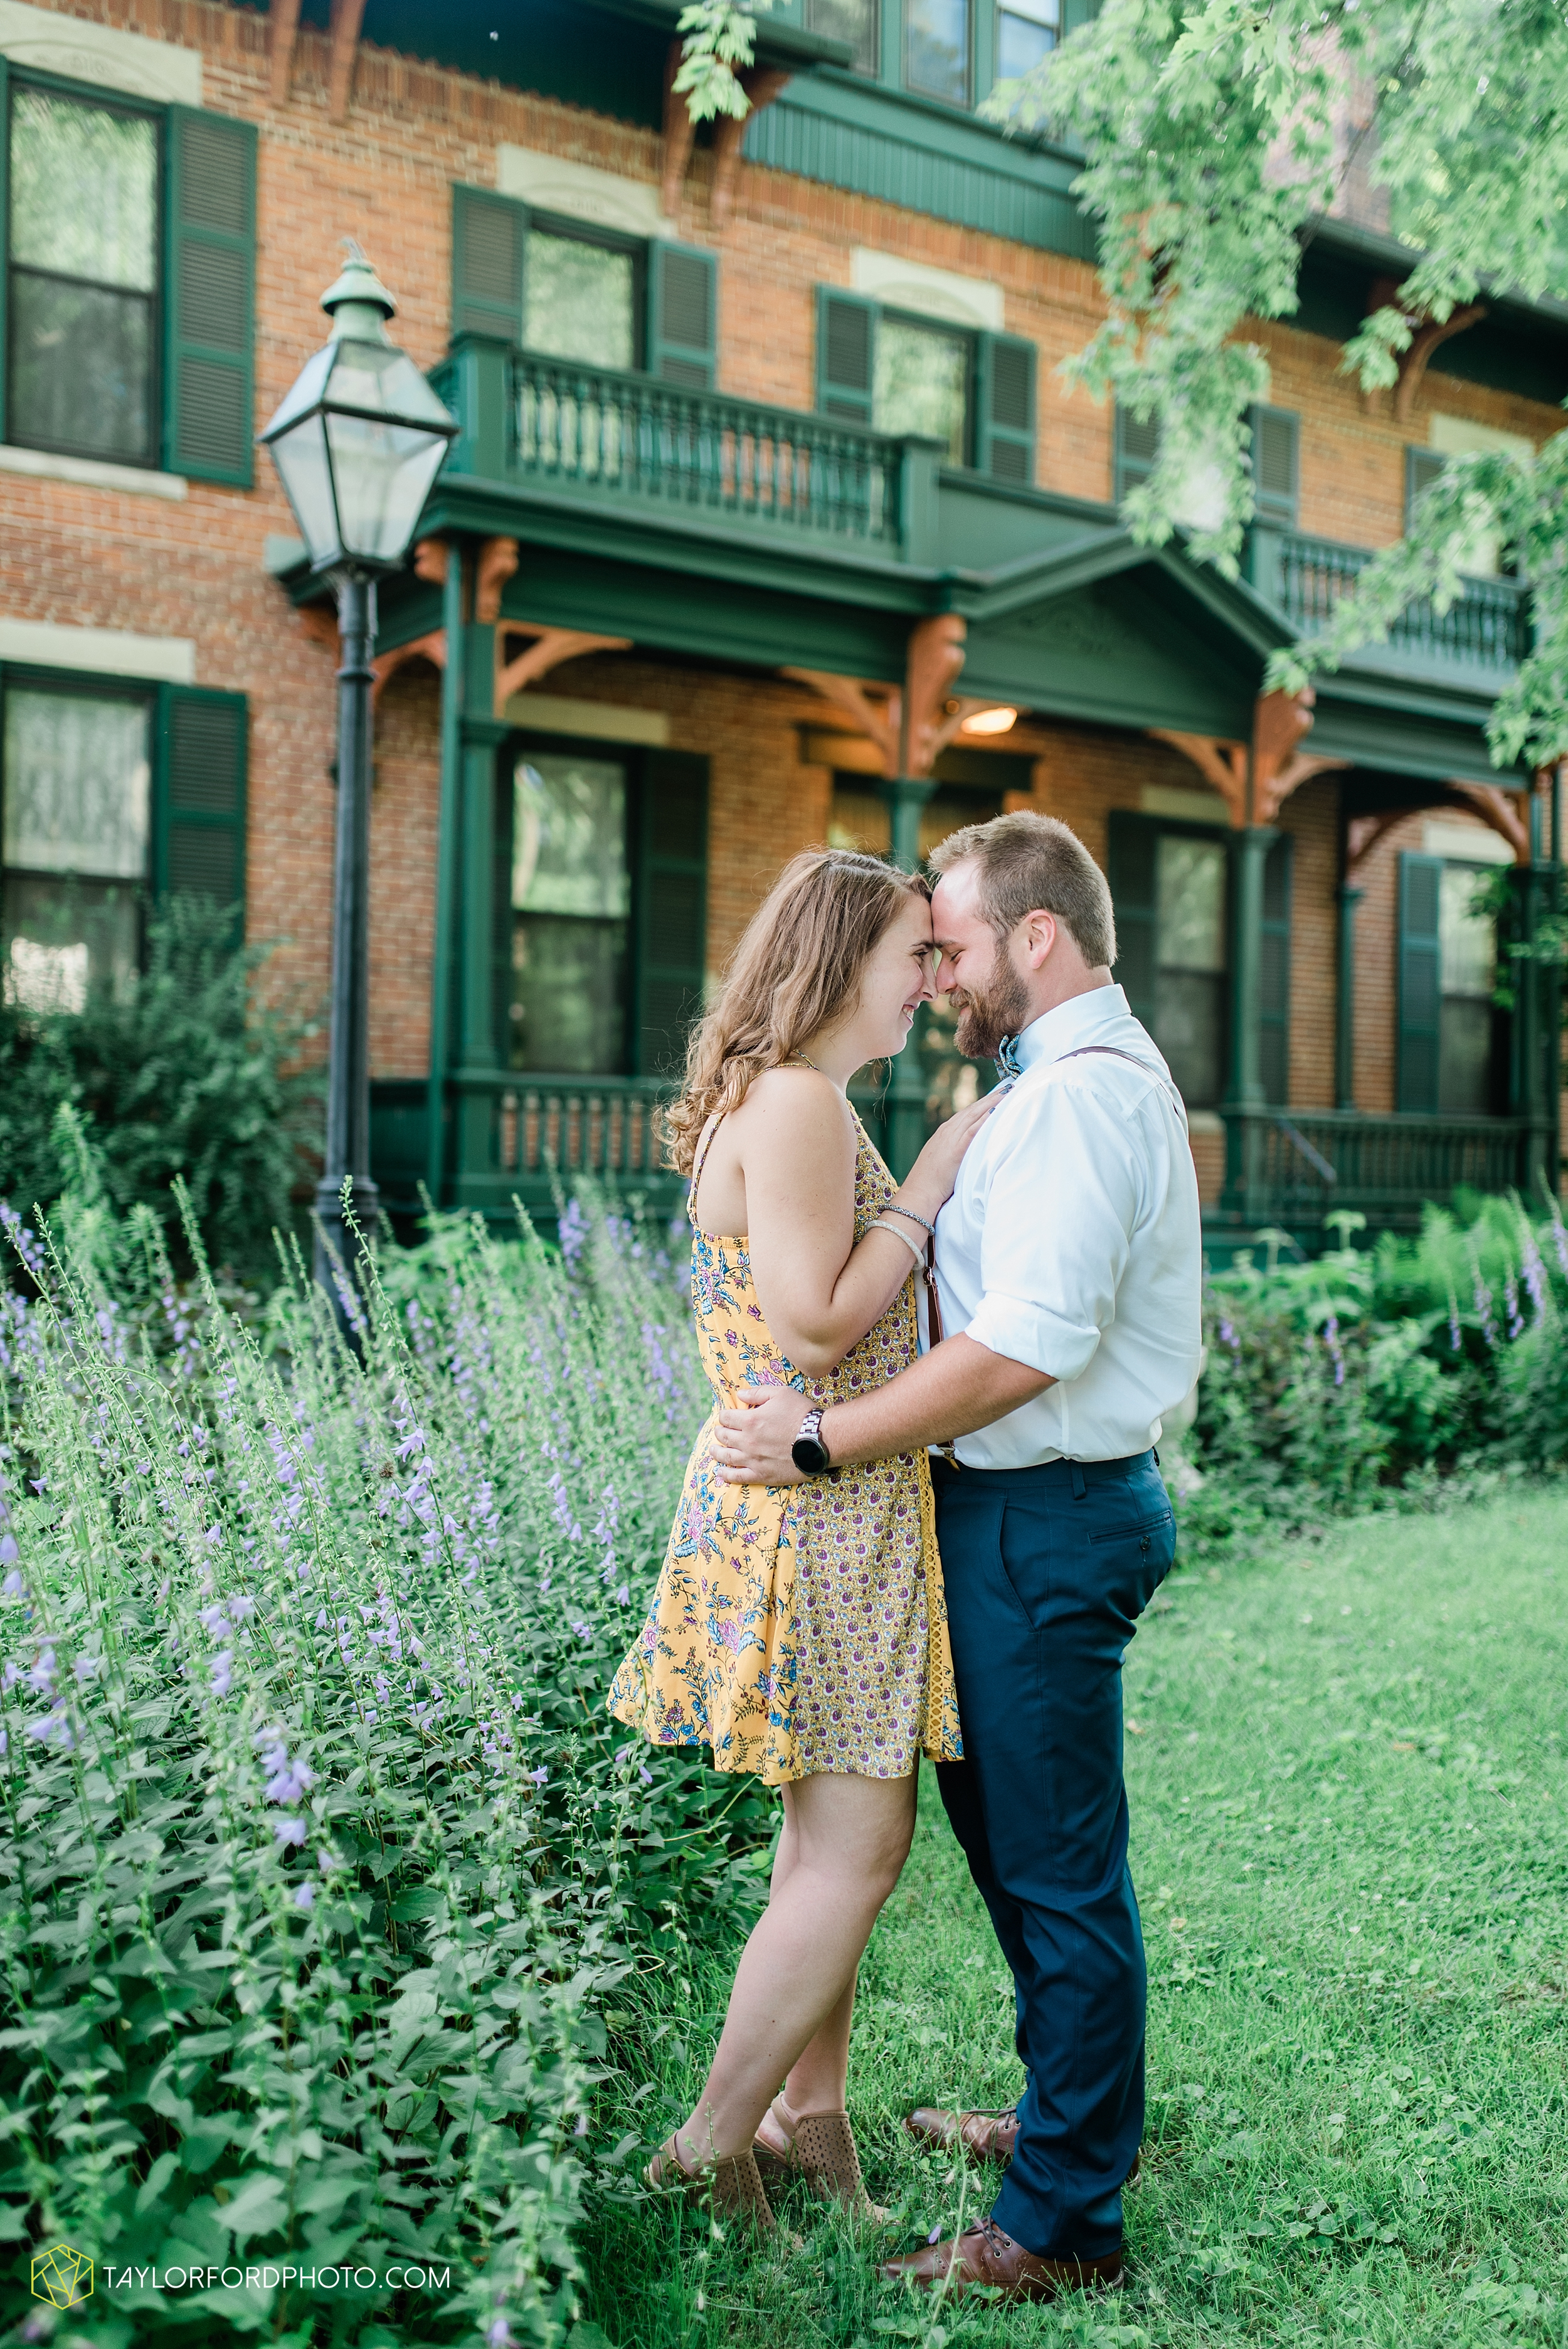 chelsey-jackson-young-downtown-fort-wayne-indiana-the-halls-deck-engagement-wedding-photographer-Taylor-Ford-Photography_8193.jpg